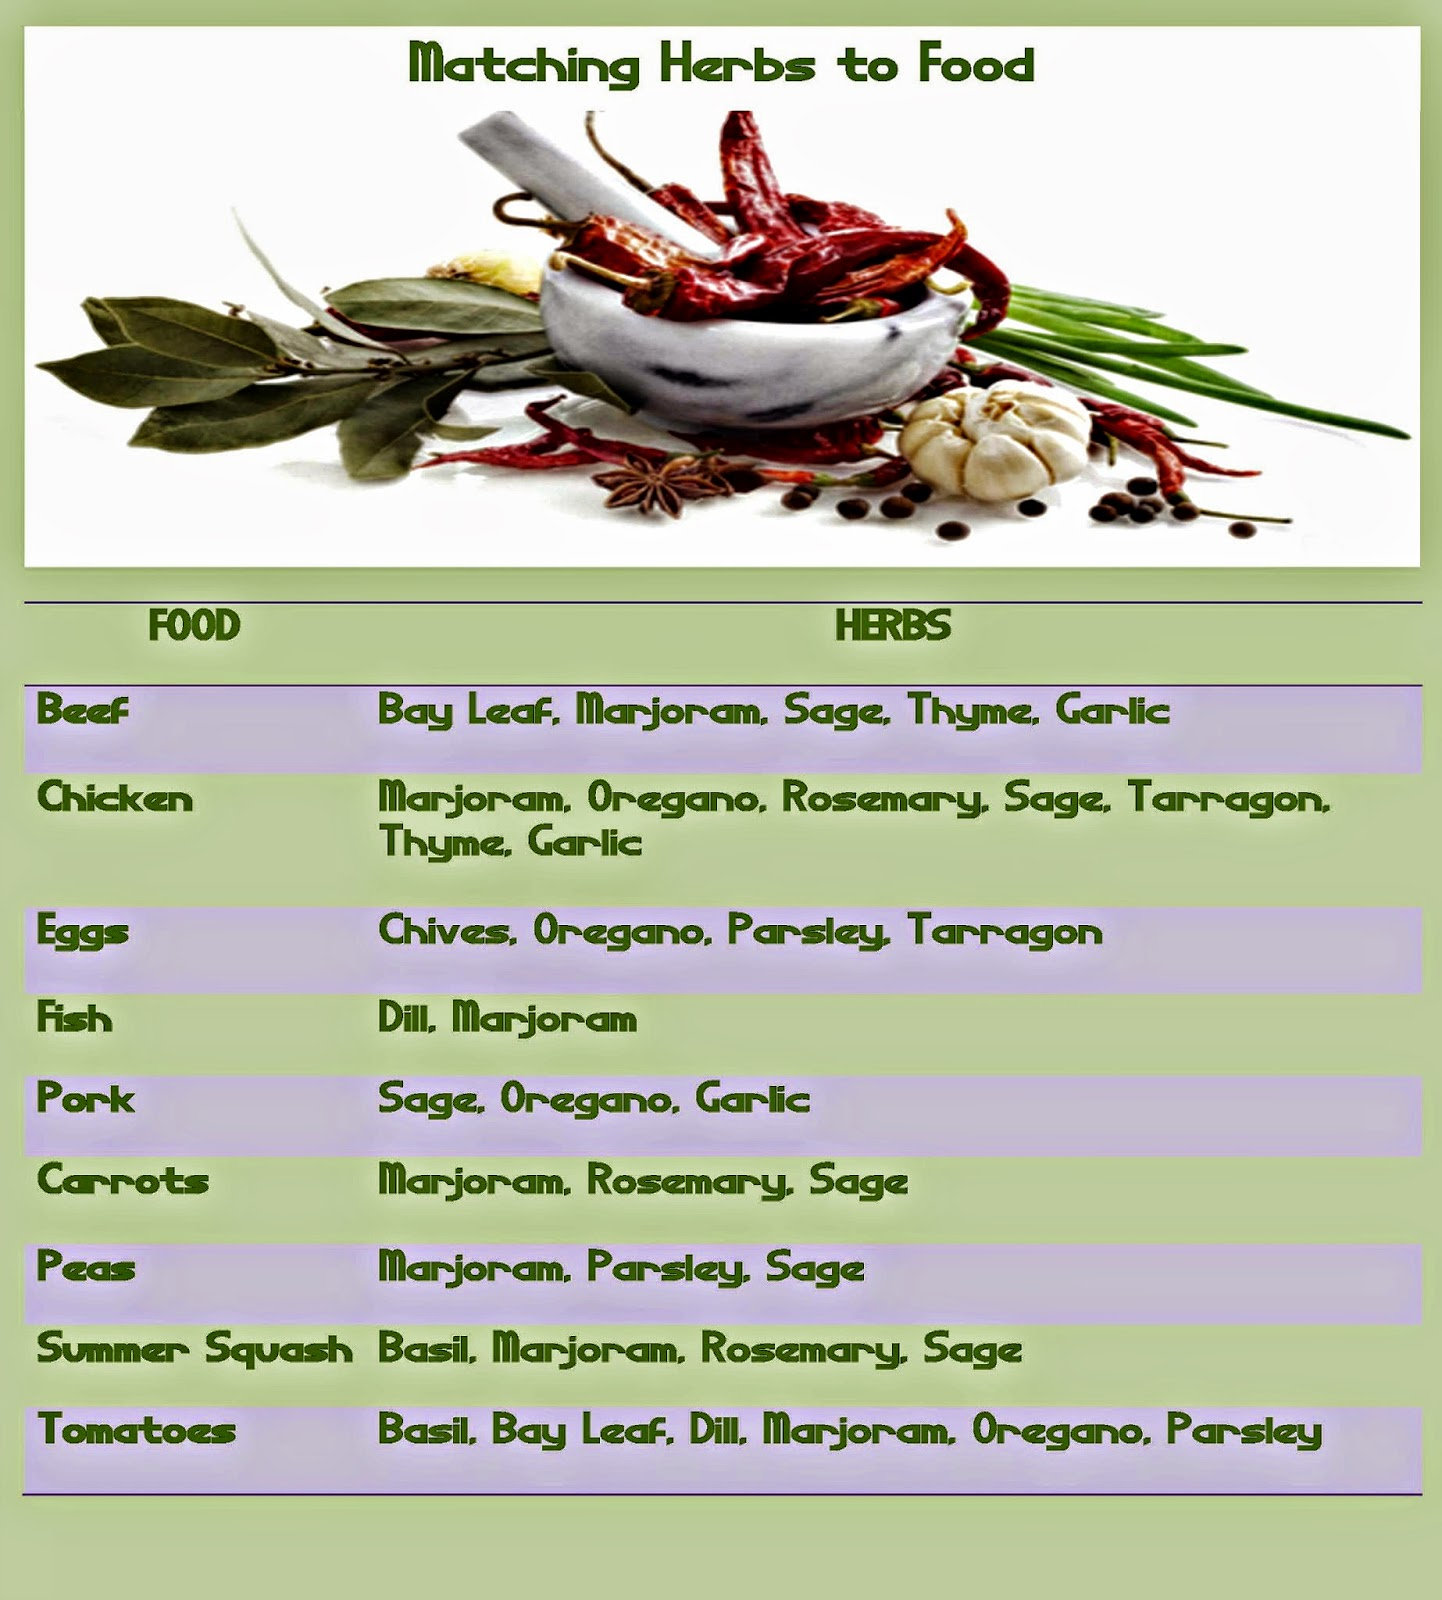 Cooking with Fresh Herbs - Matching Herbs to Food - Easy Life Meal & Party Planning